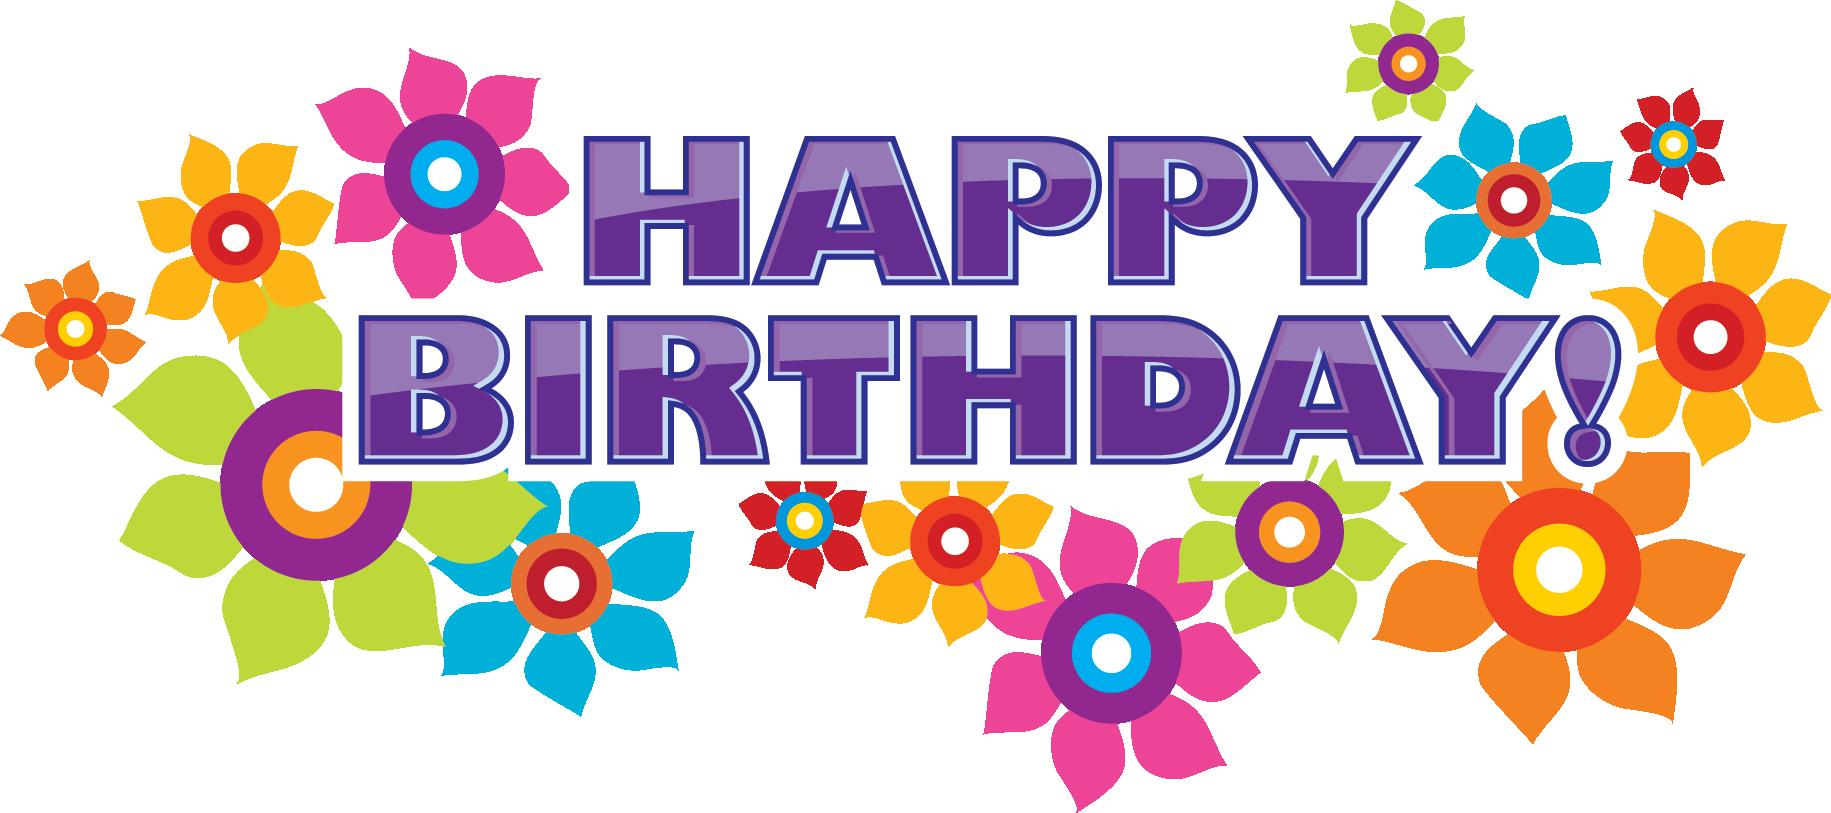 free funny birthday clipart images ; f68bbf70a8b772dd423aa58424408e93